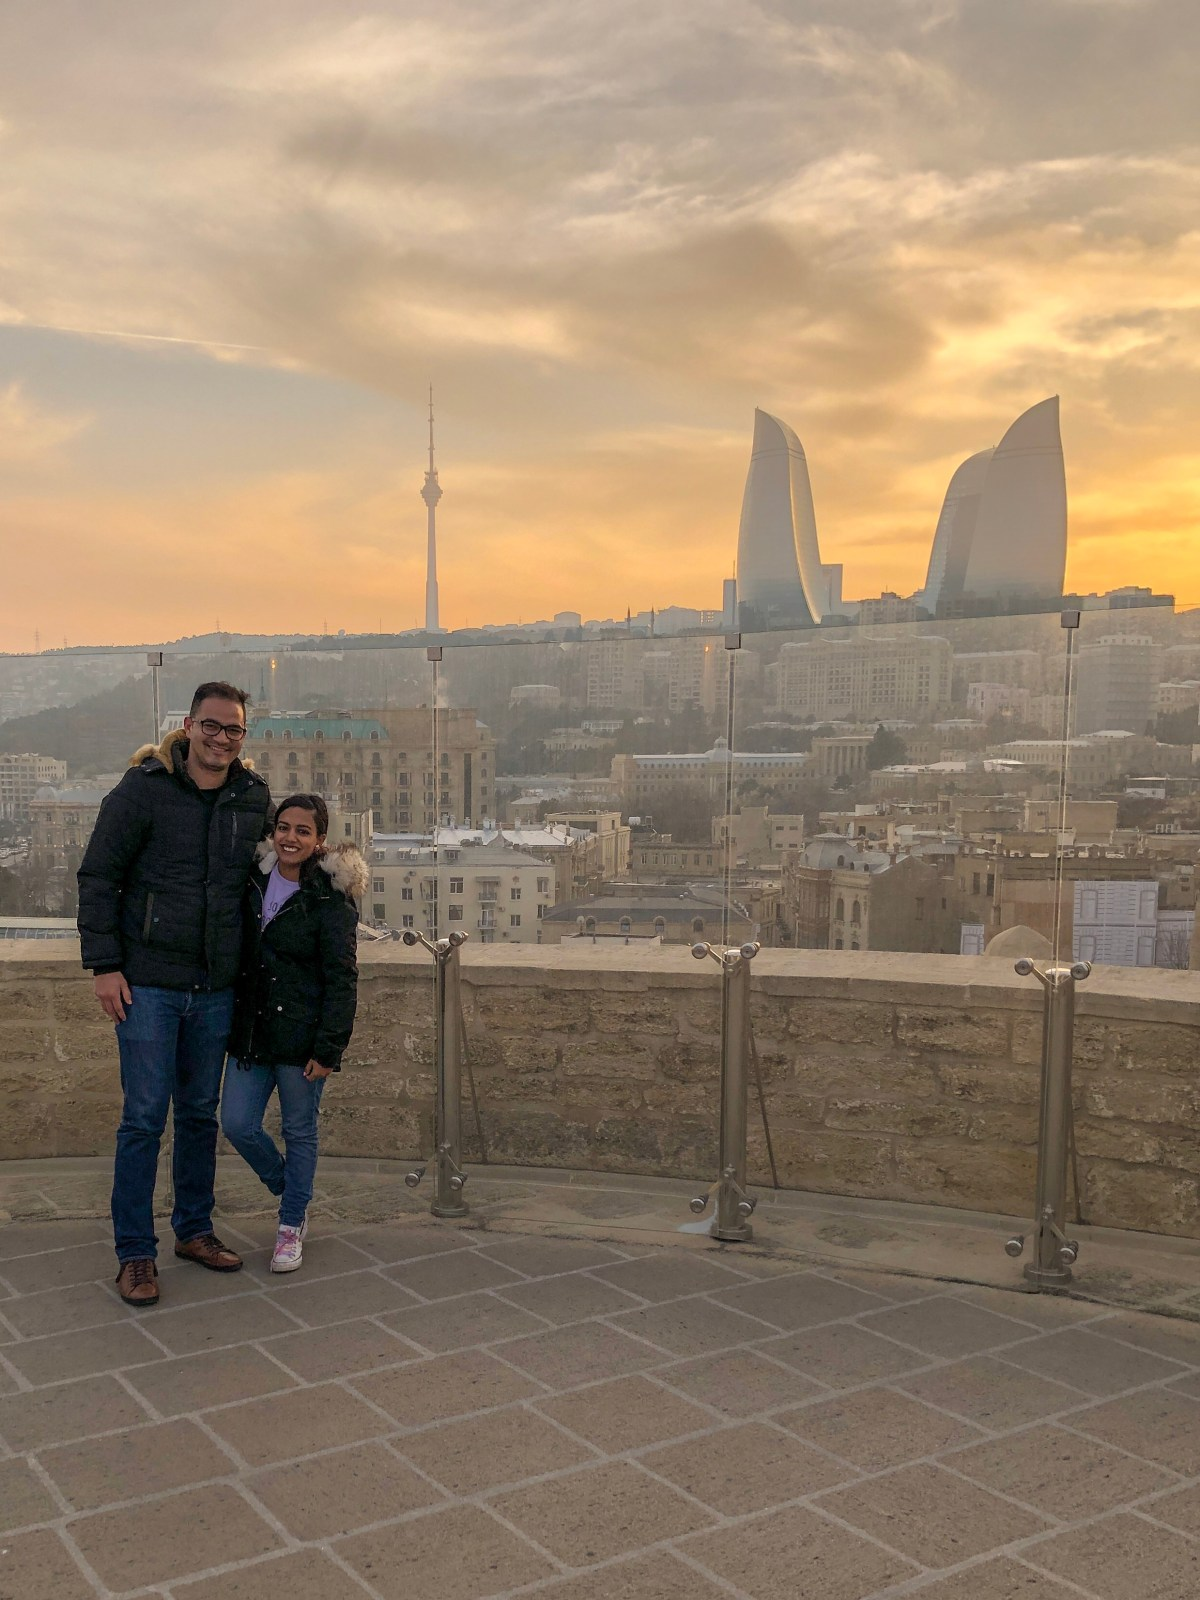 where to go for sunset in baku